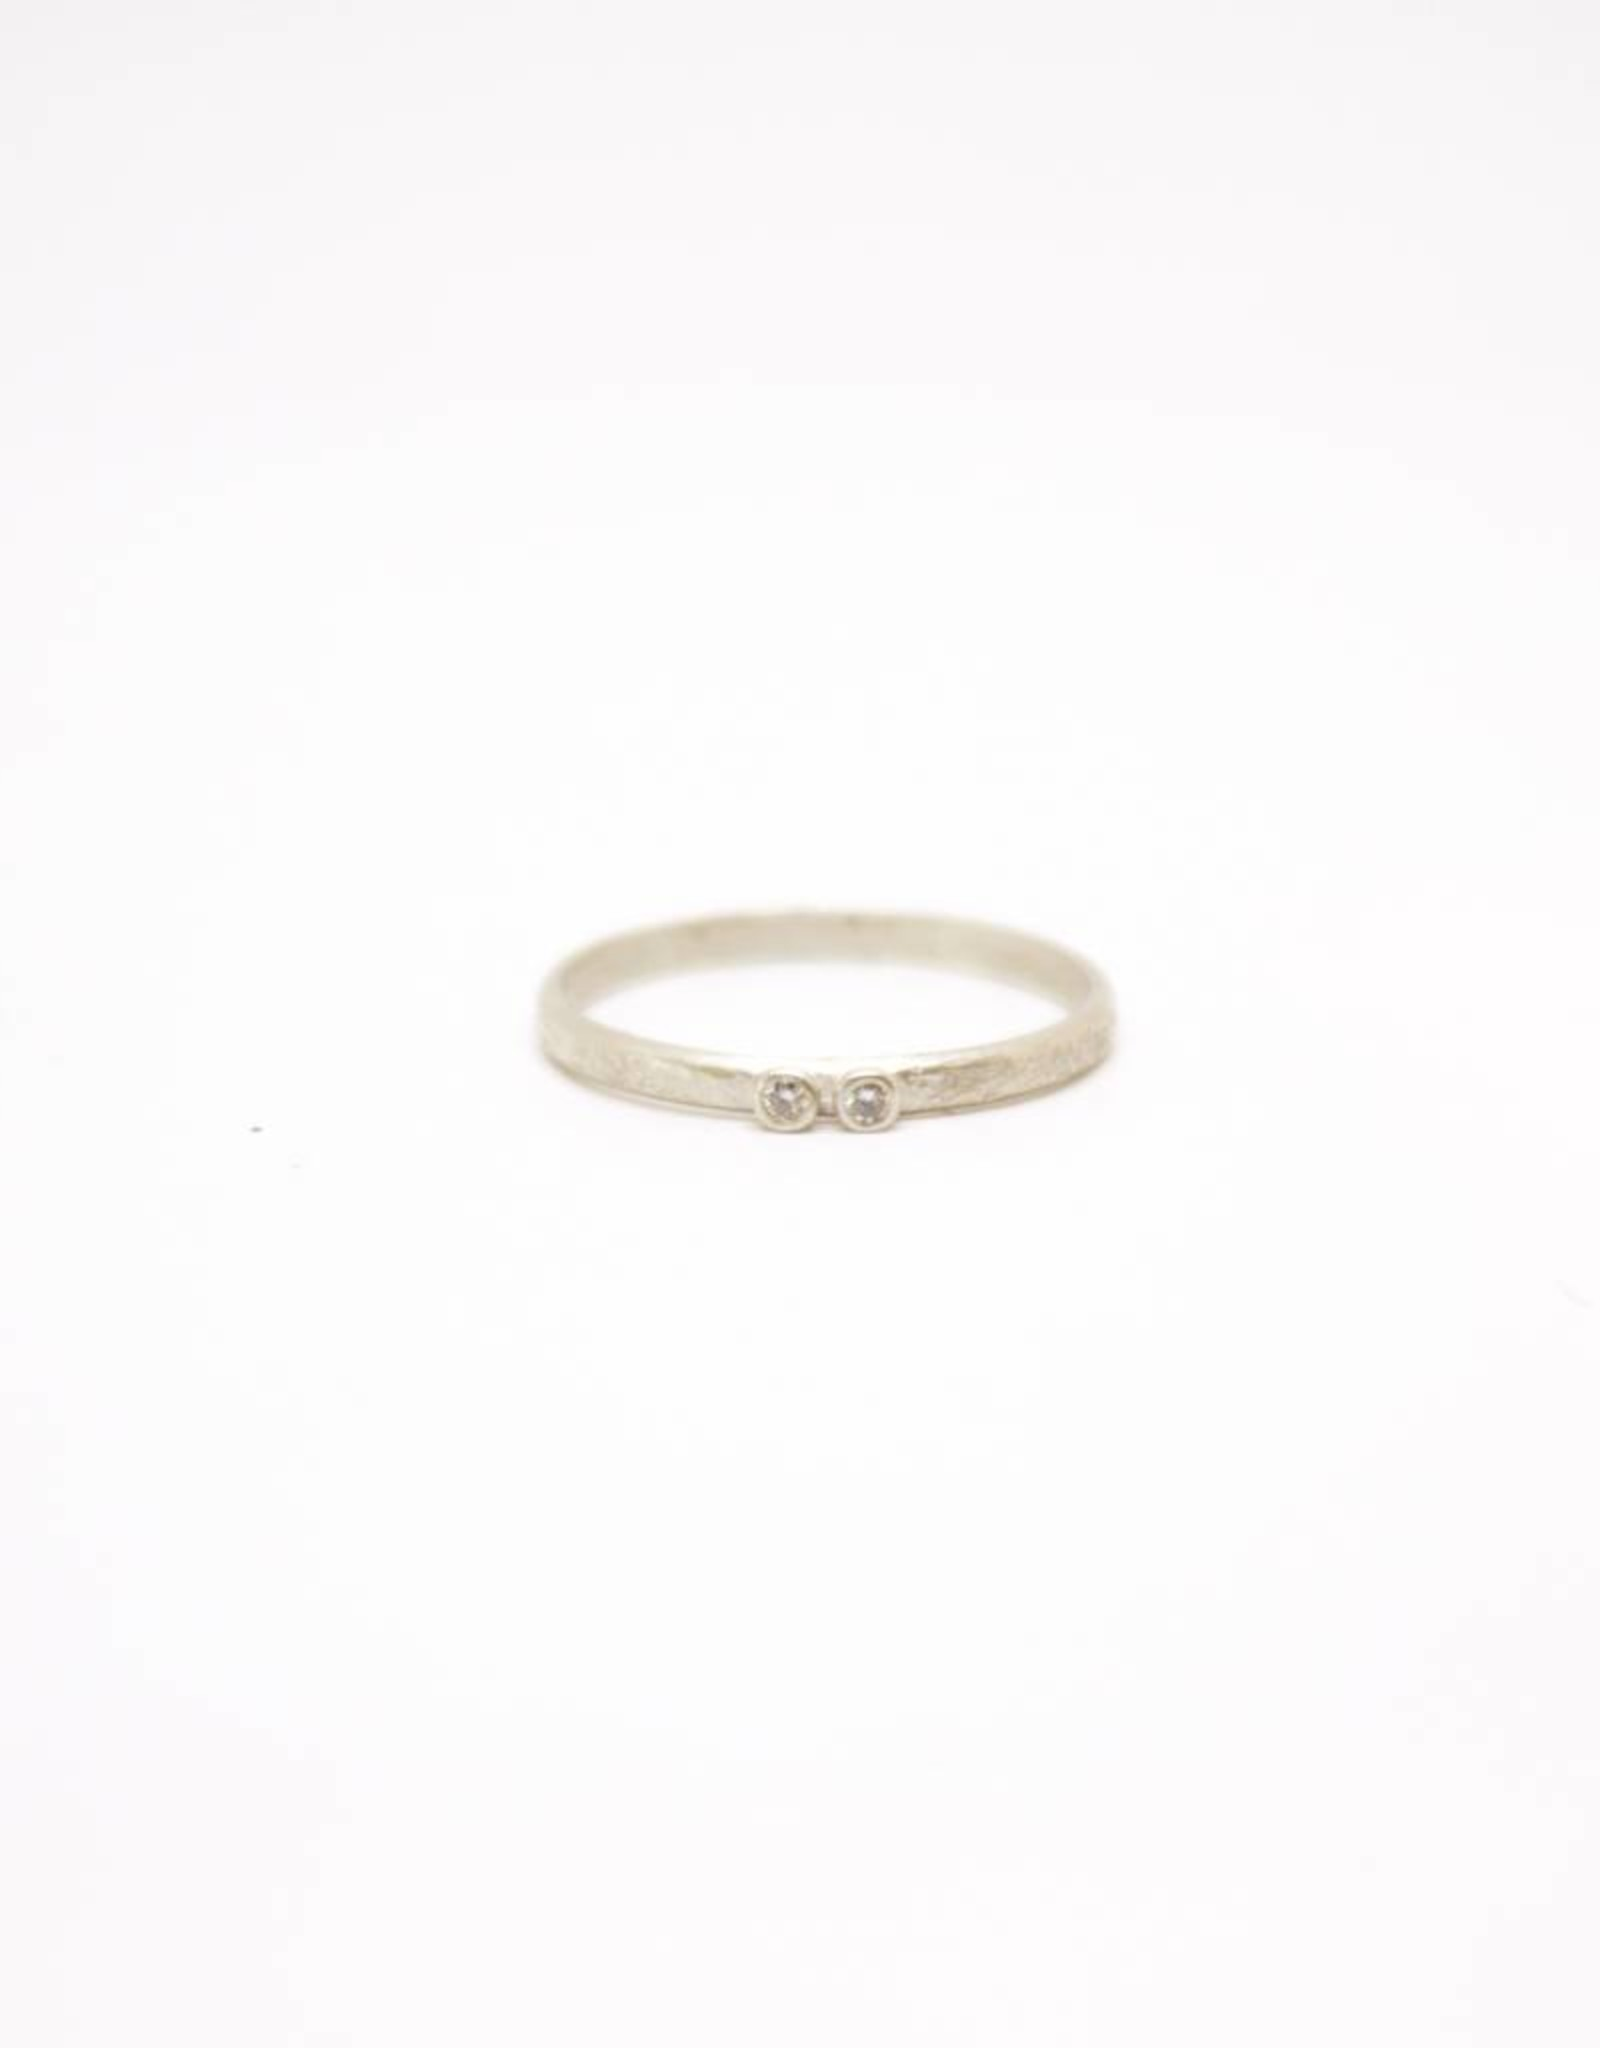 Sarah Swell Weathered Stacking Ring - 2 Diamond